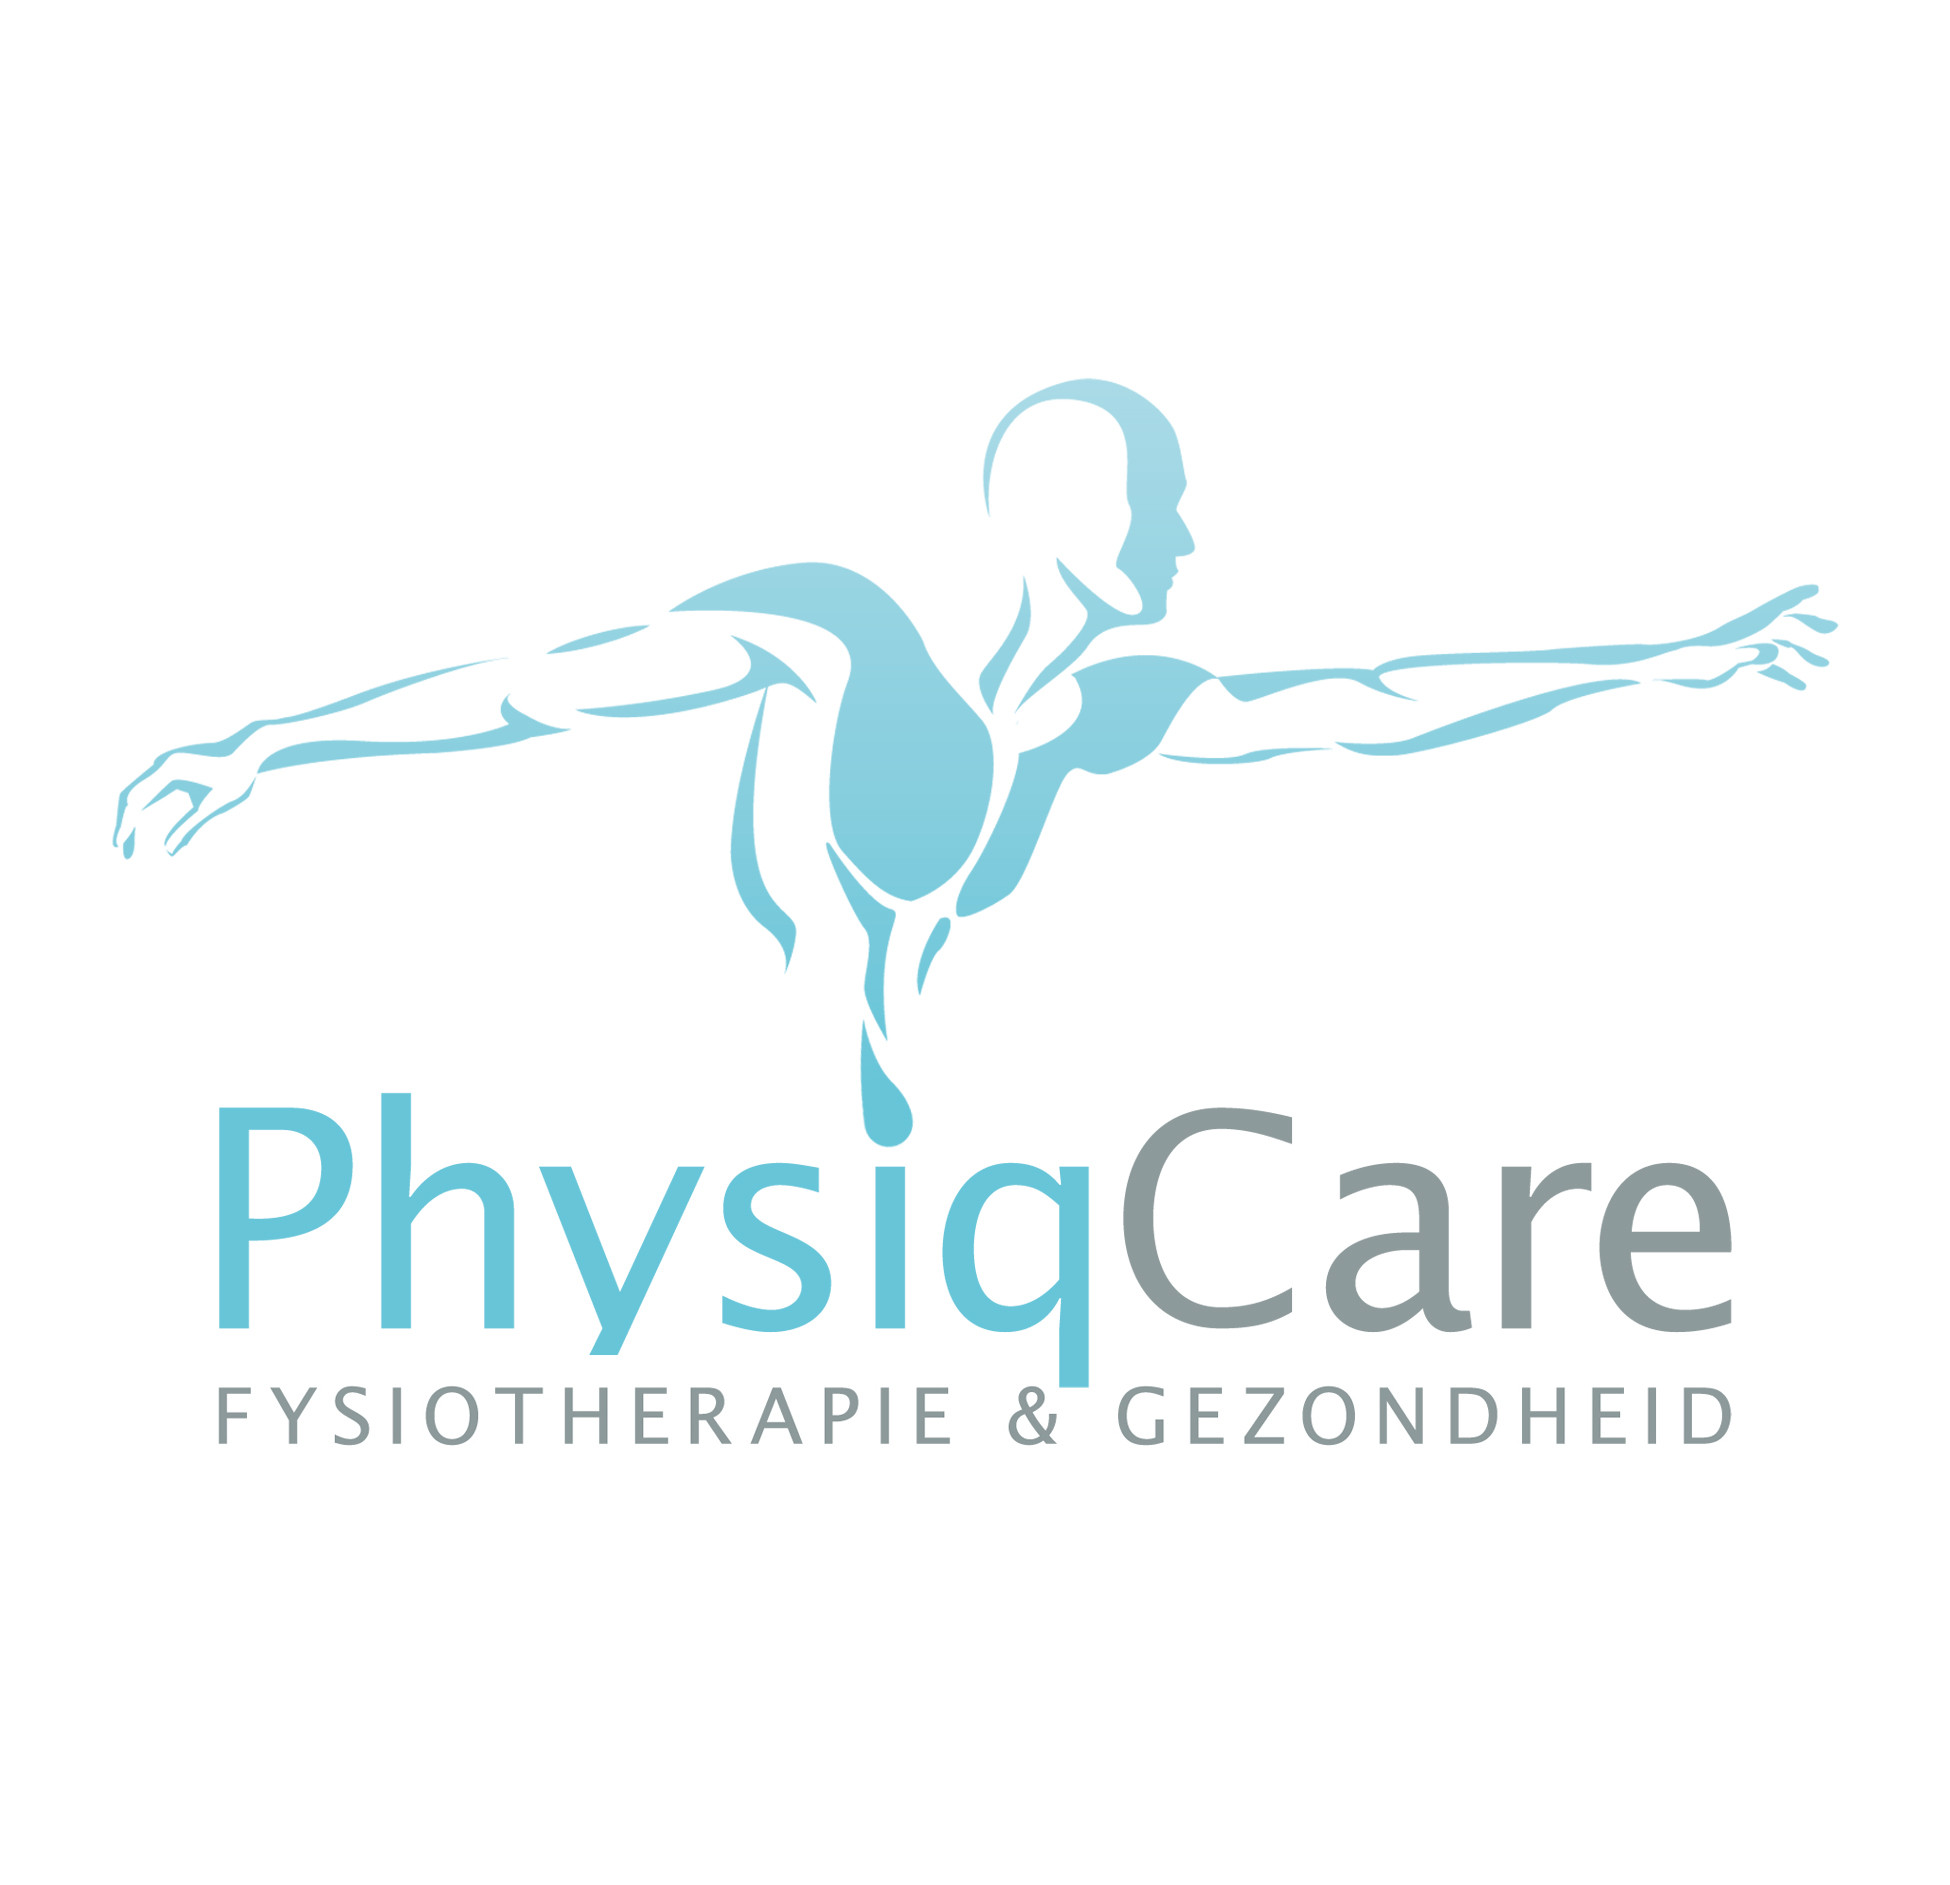 (c) Physiqcare.nl